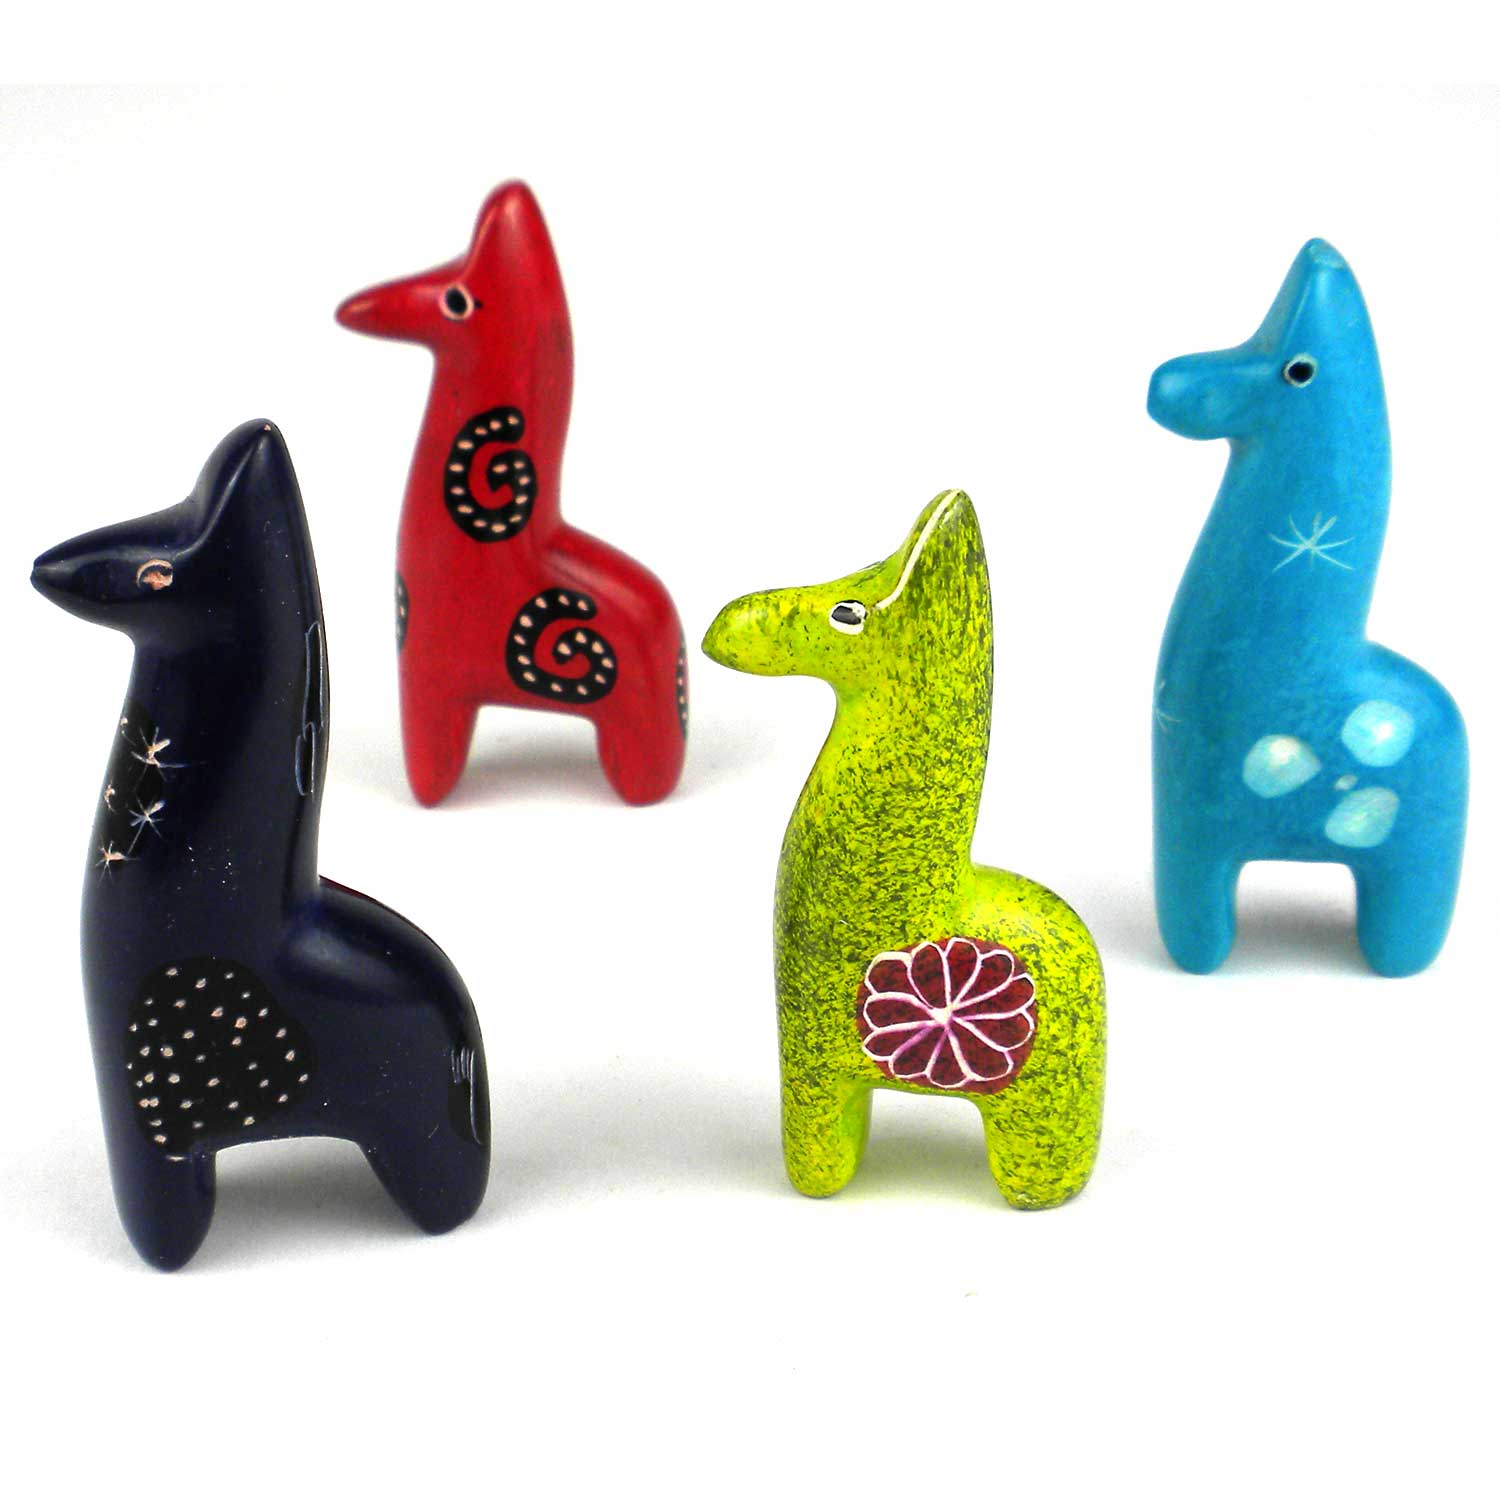 Soapstone Giraffes - Tiny 1.5 - 2 inches